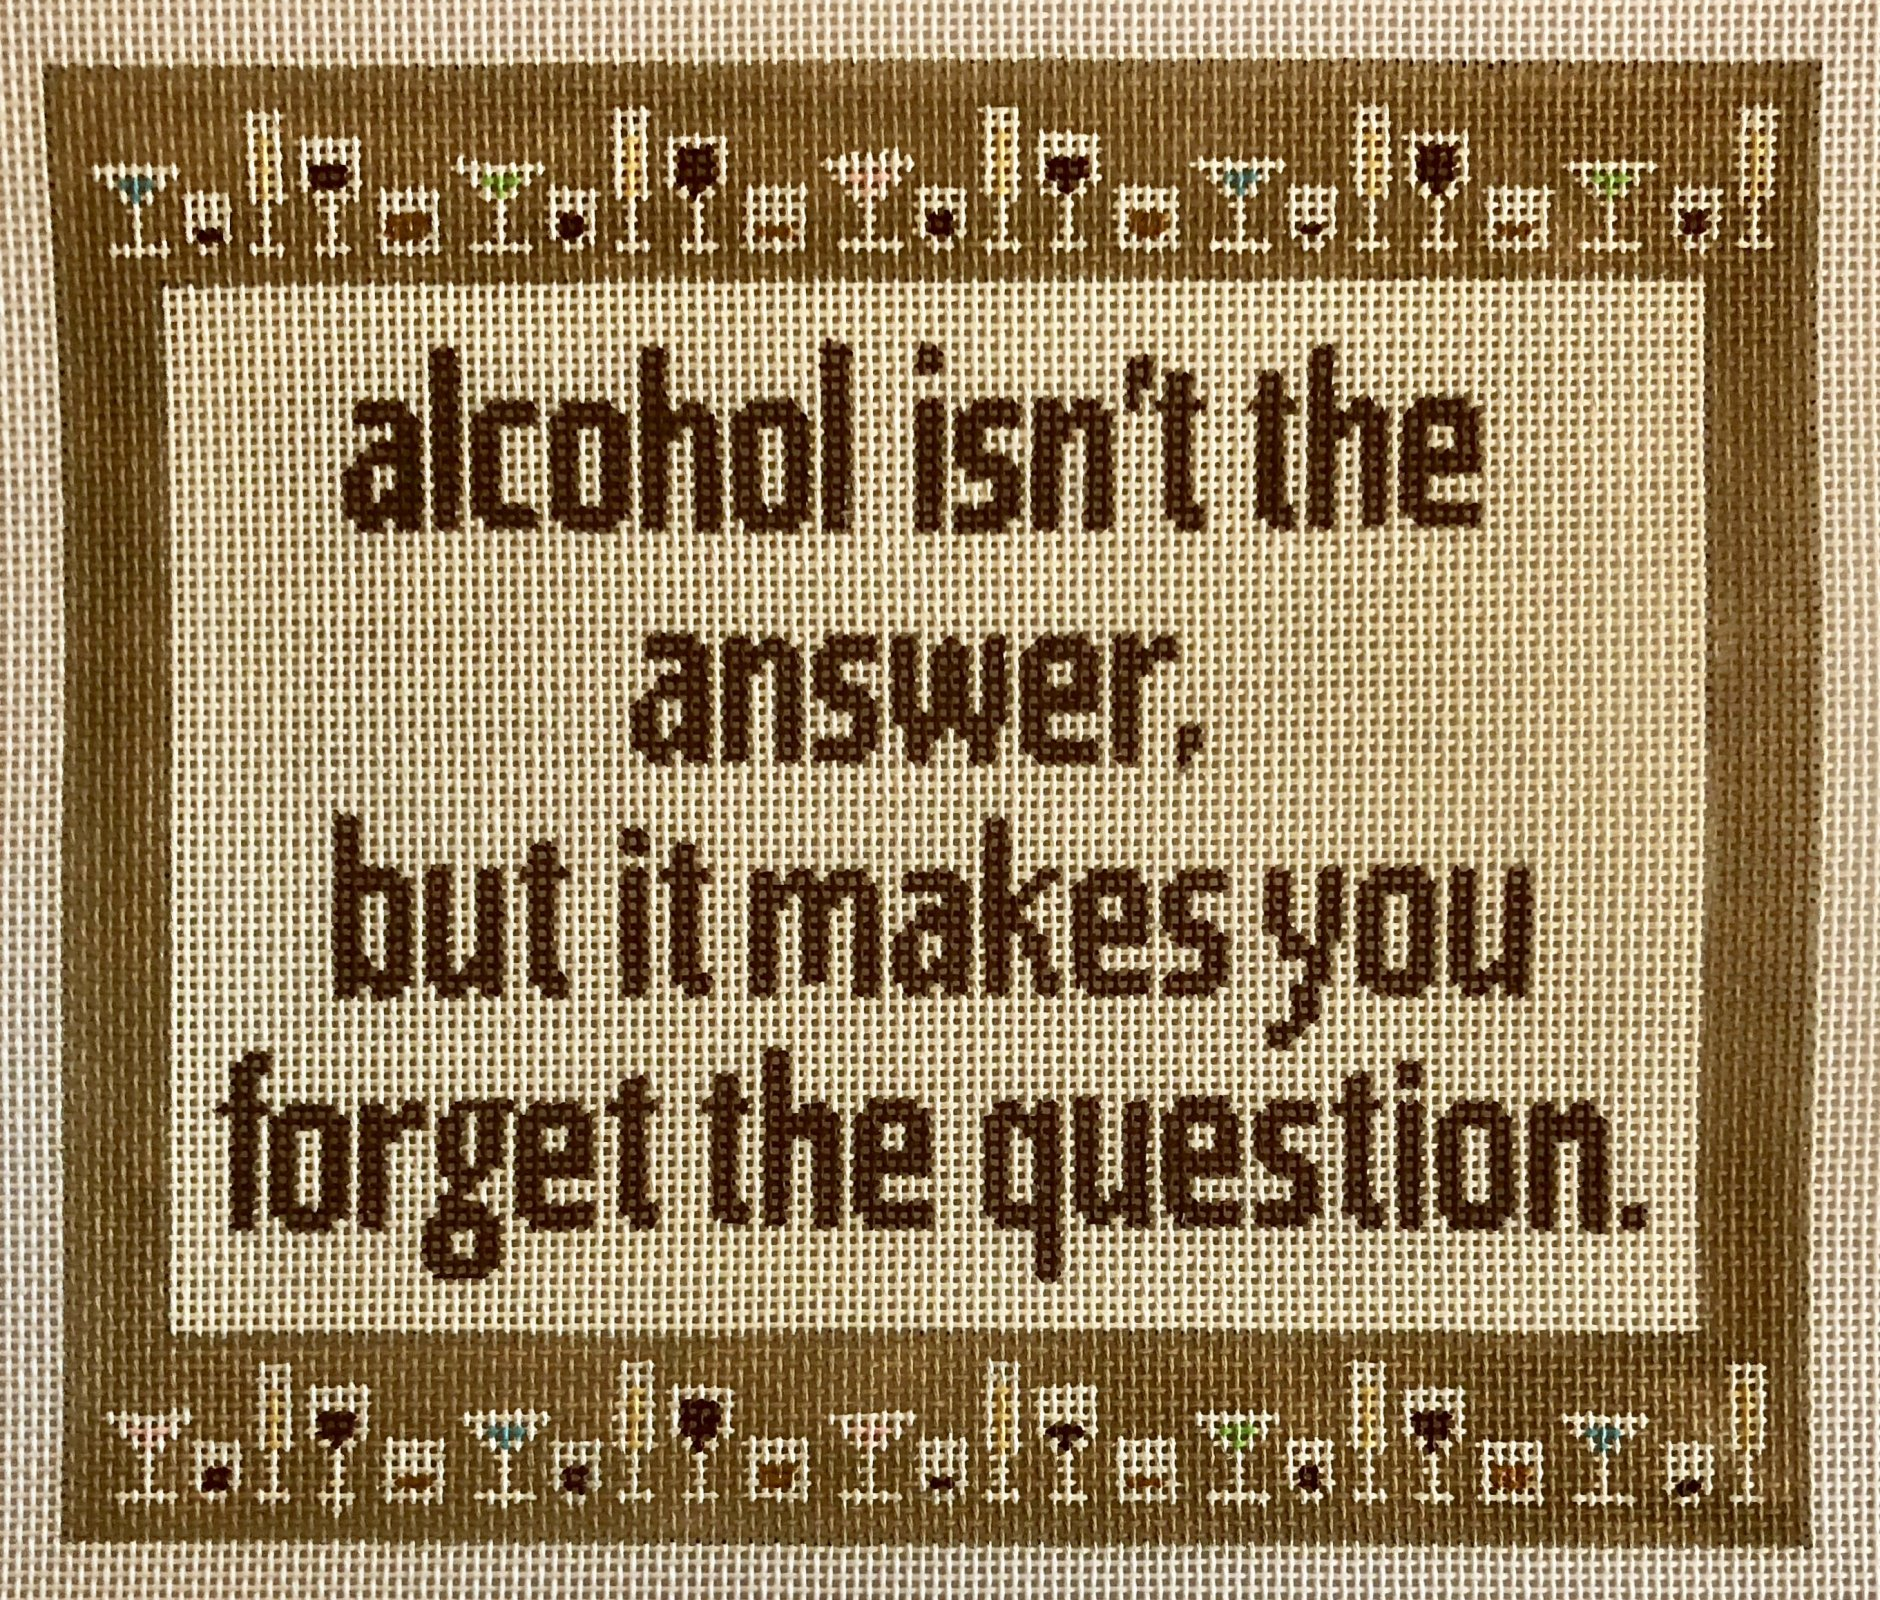 alcohol isn't the answer...